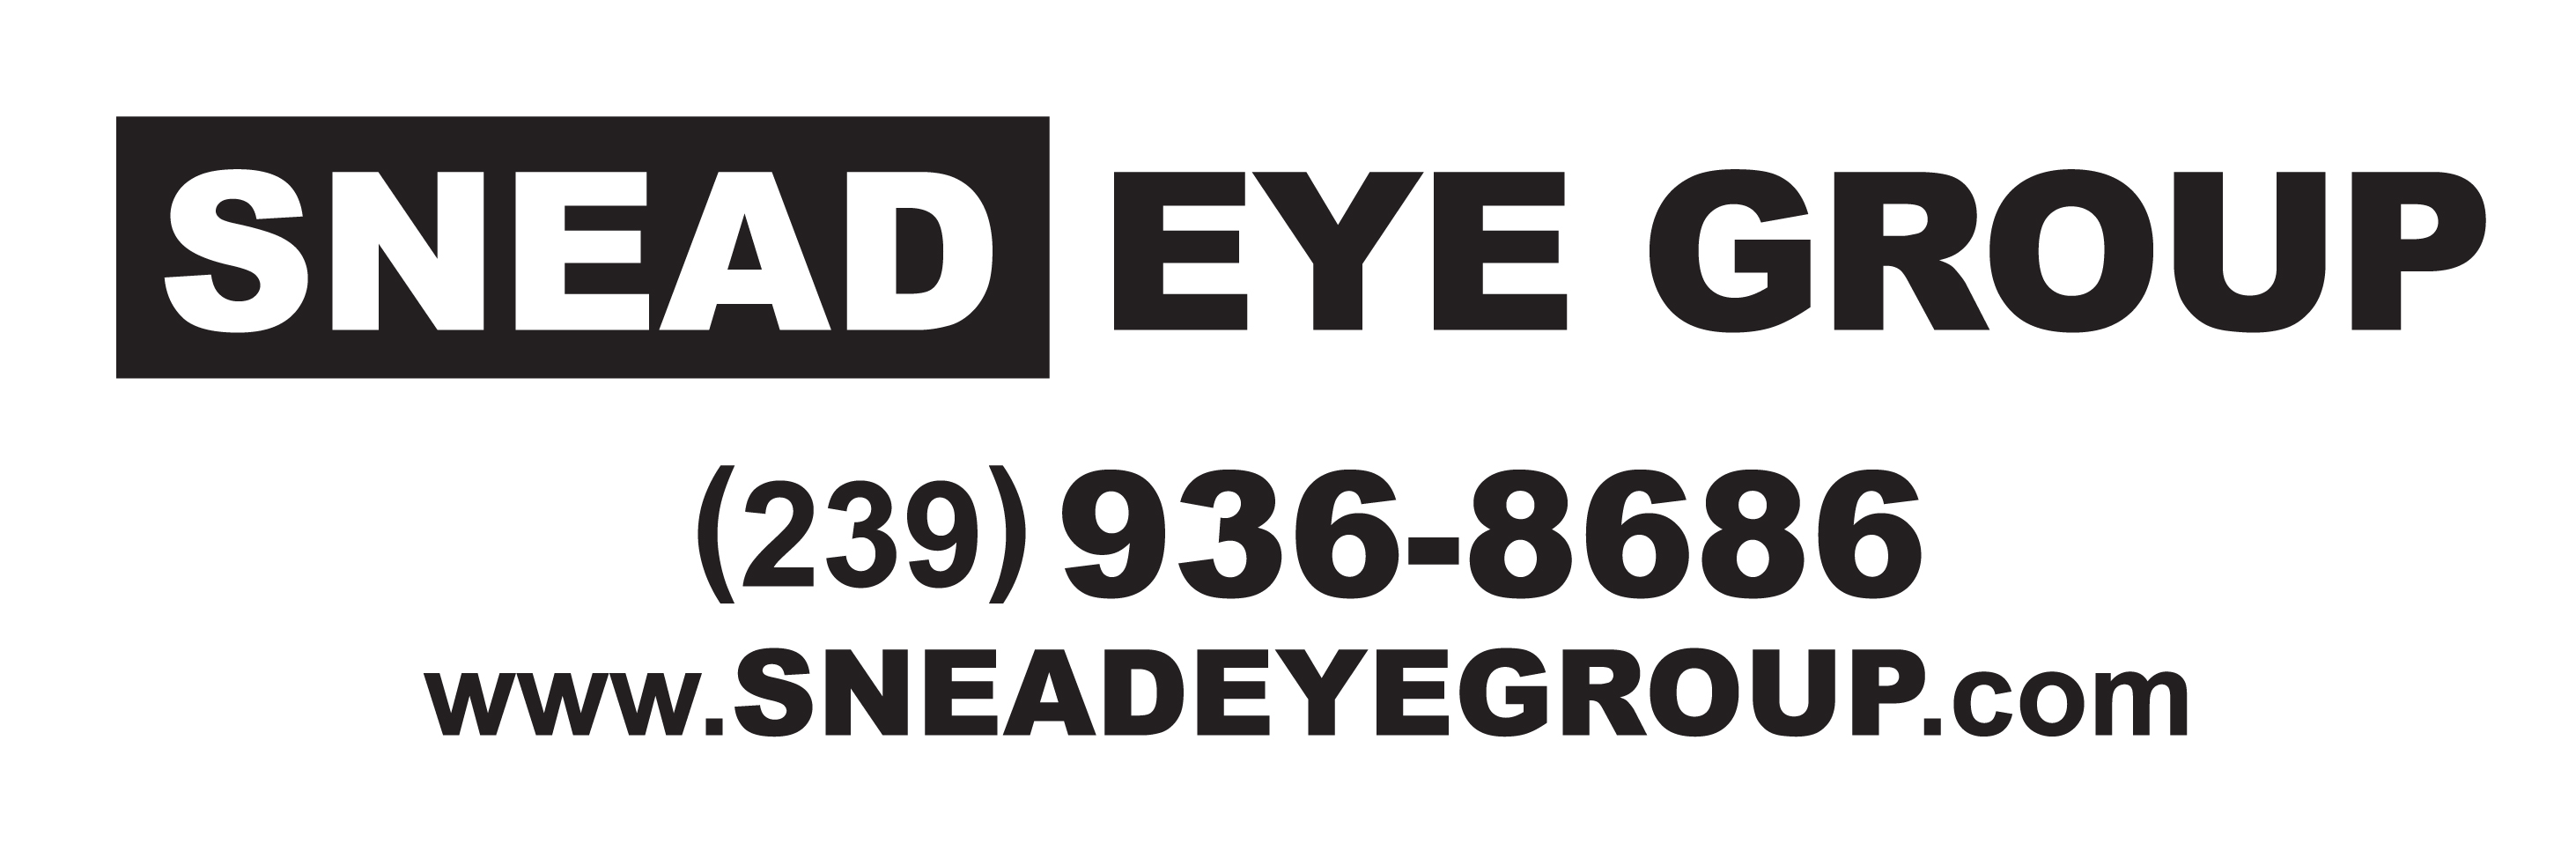 Snead Eye Group Southwest Florida Cataract Specialists